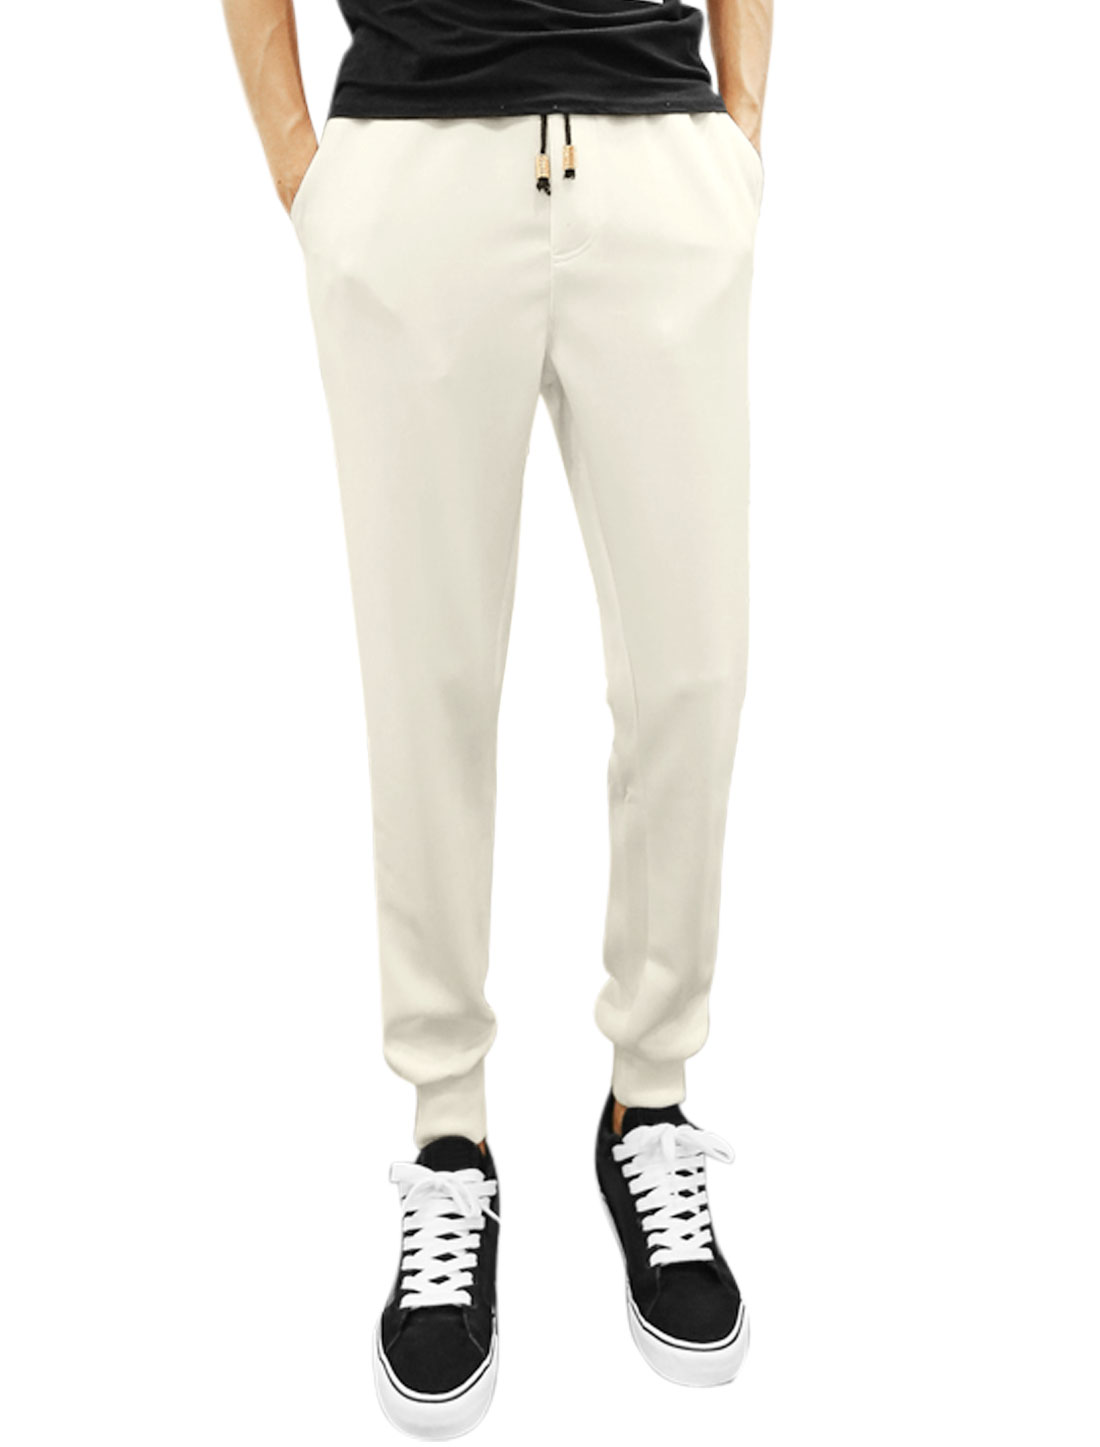 Men Drawstring Waist Zip Fly Slant Pockets Casual Pants White W30